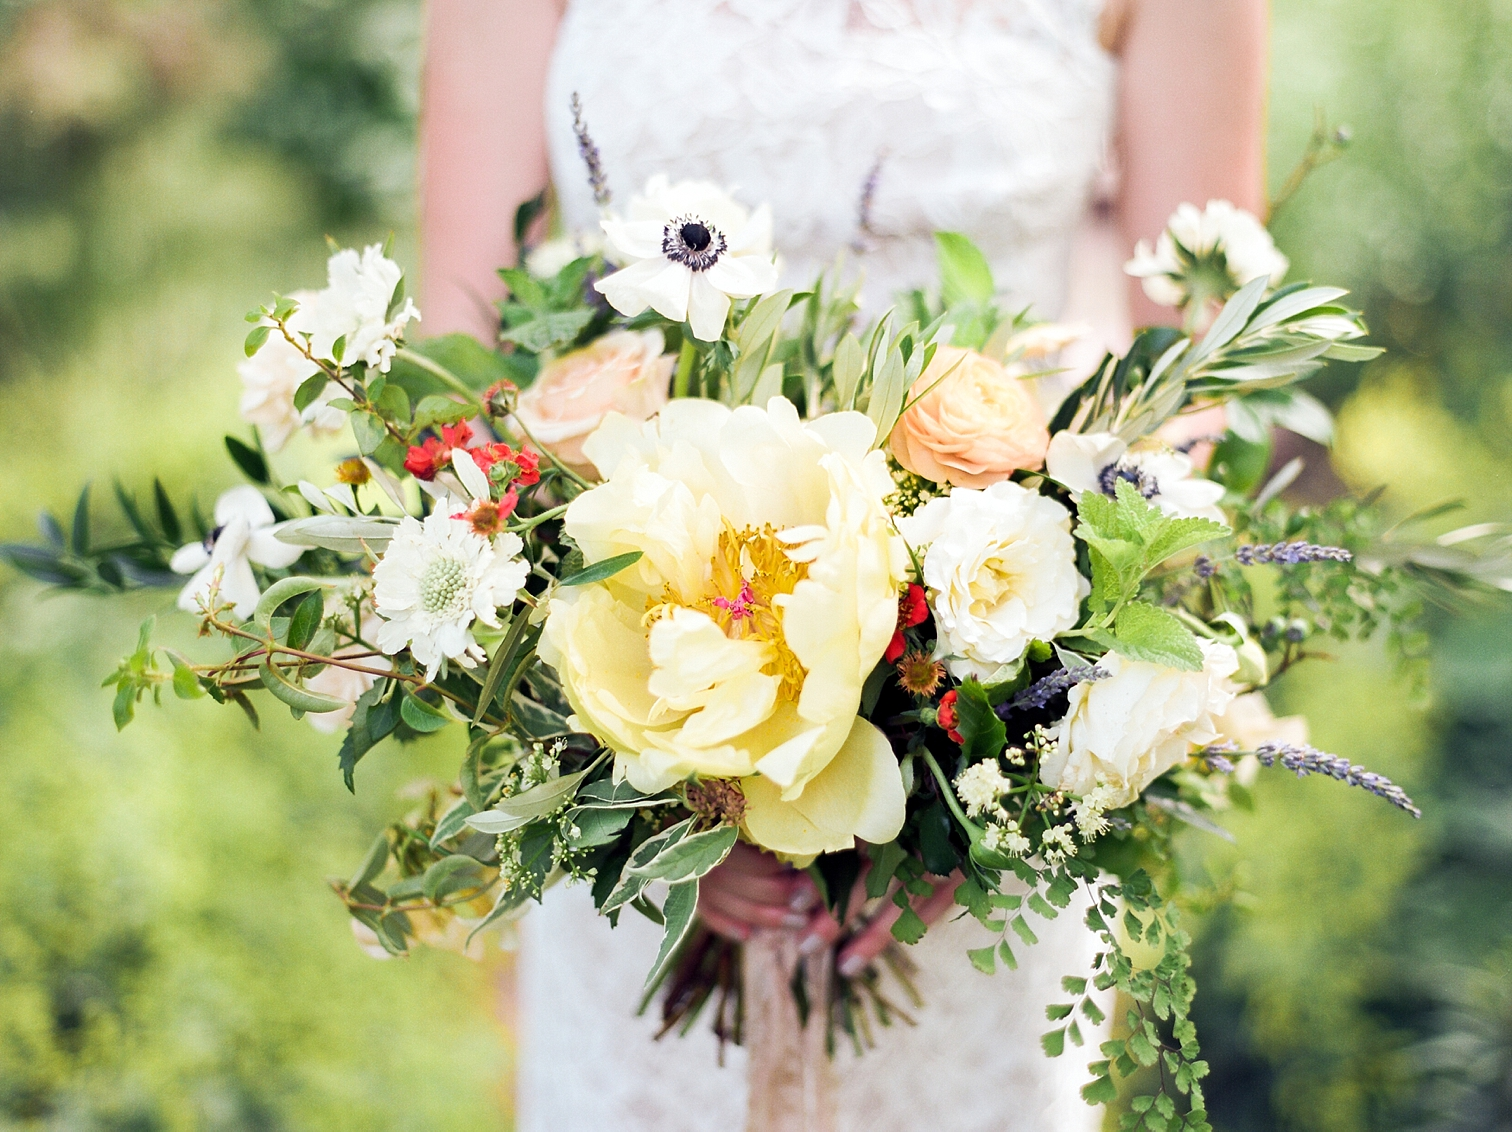 Chautauqua Dining Hall Wedding, Big Wedding Bouquet, Outdoor Wedding Details, Colorado Mountain Weddings, Danielle DeFiore Photographer, Destination Wedding Photographers, Weddings in Boulder Colorado, Outdoor Ceremony, Film Photographer, Summer Weddings, Bride Holding Bouquet